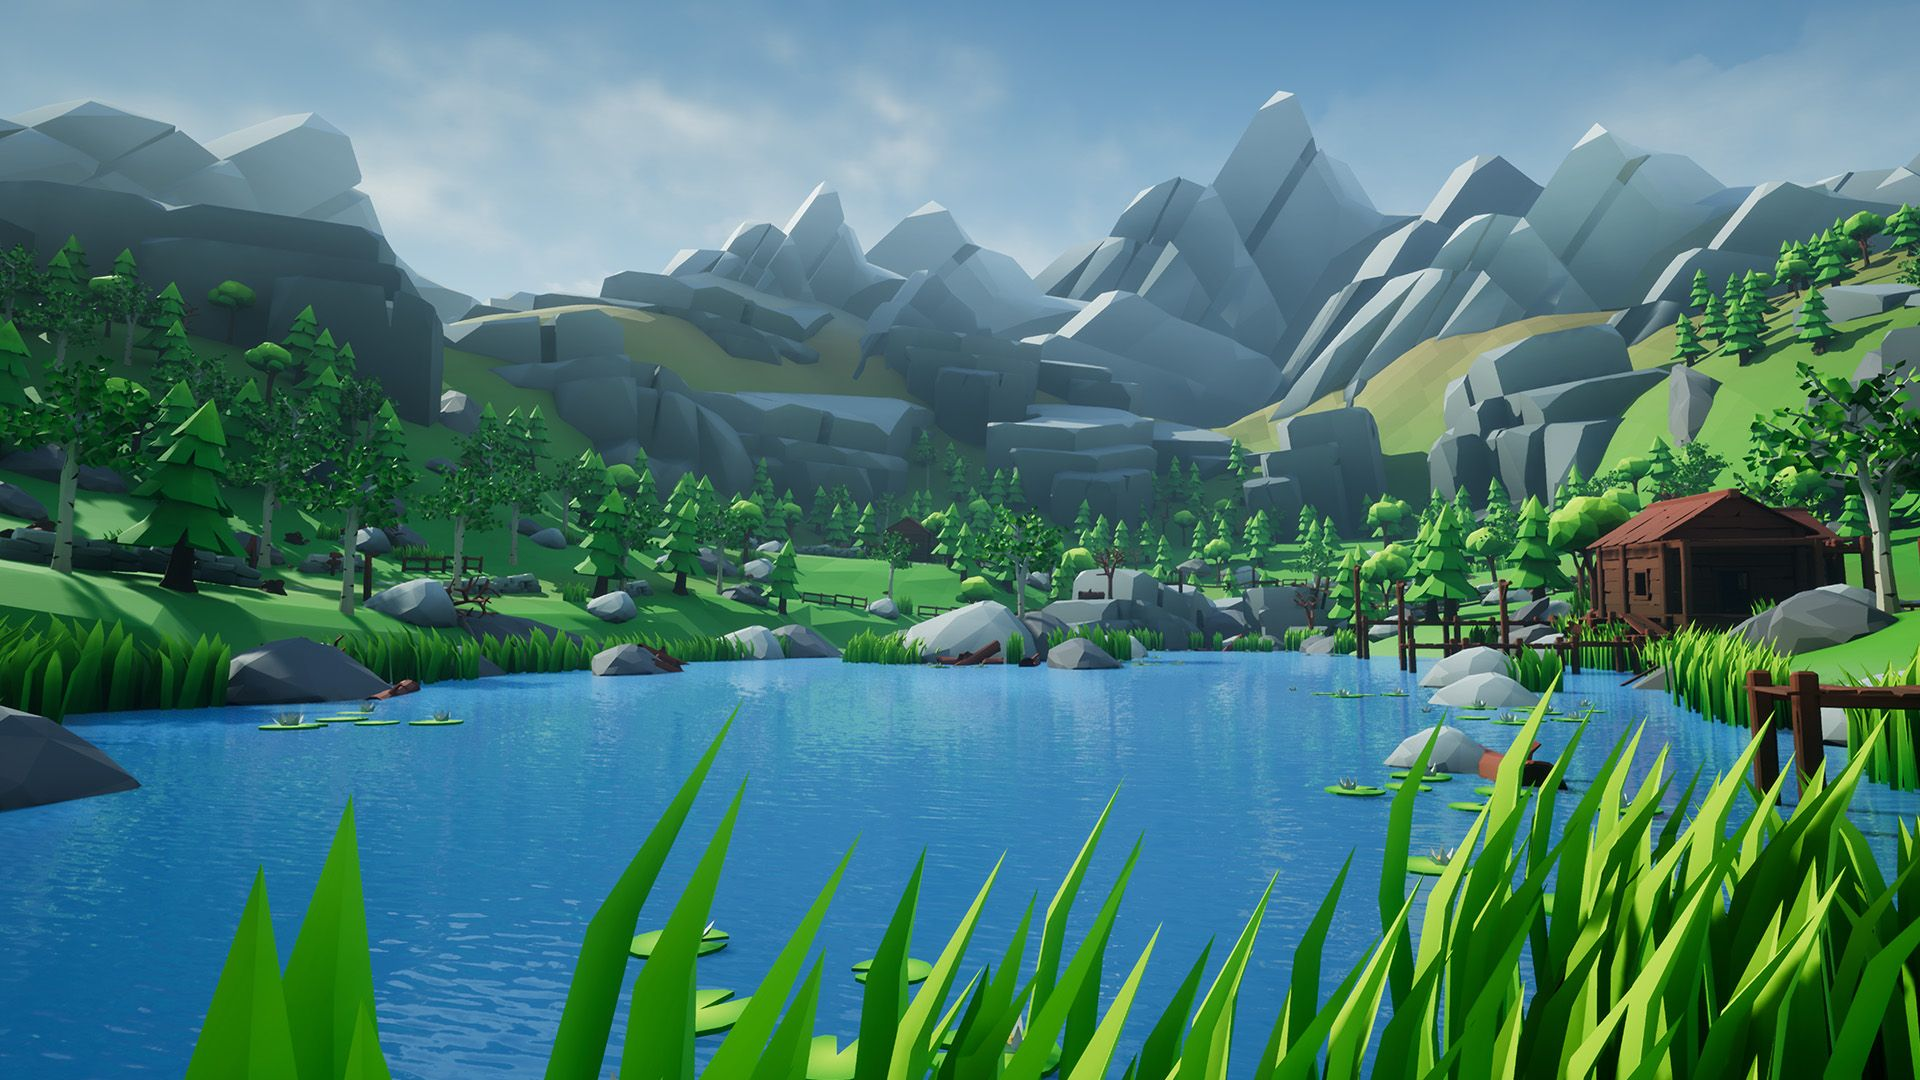 Lowpoly Style Woodlands Pack by CH Assets in Environments